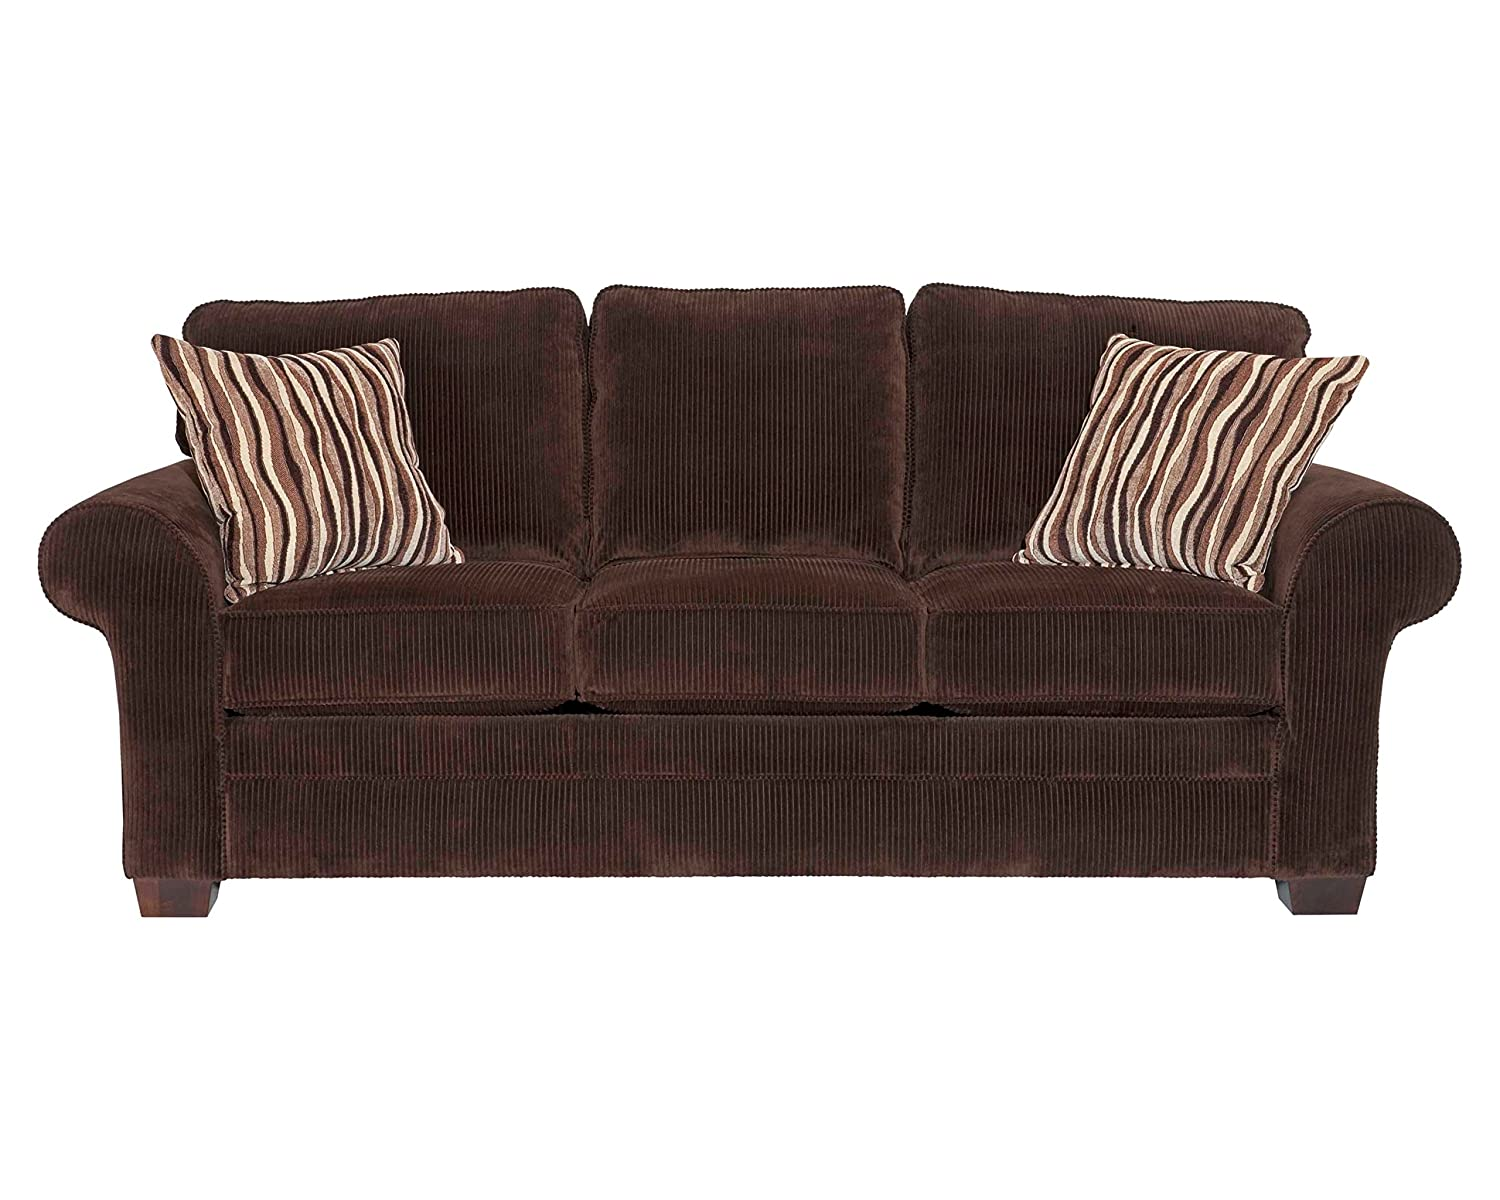 Amazoncom Broyhill Zachary Sofa Brown Chocolate Kitchen Dining - Broyhill emily sofa